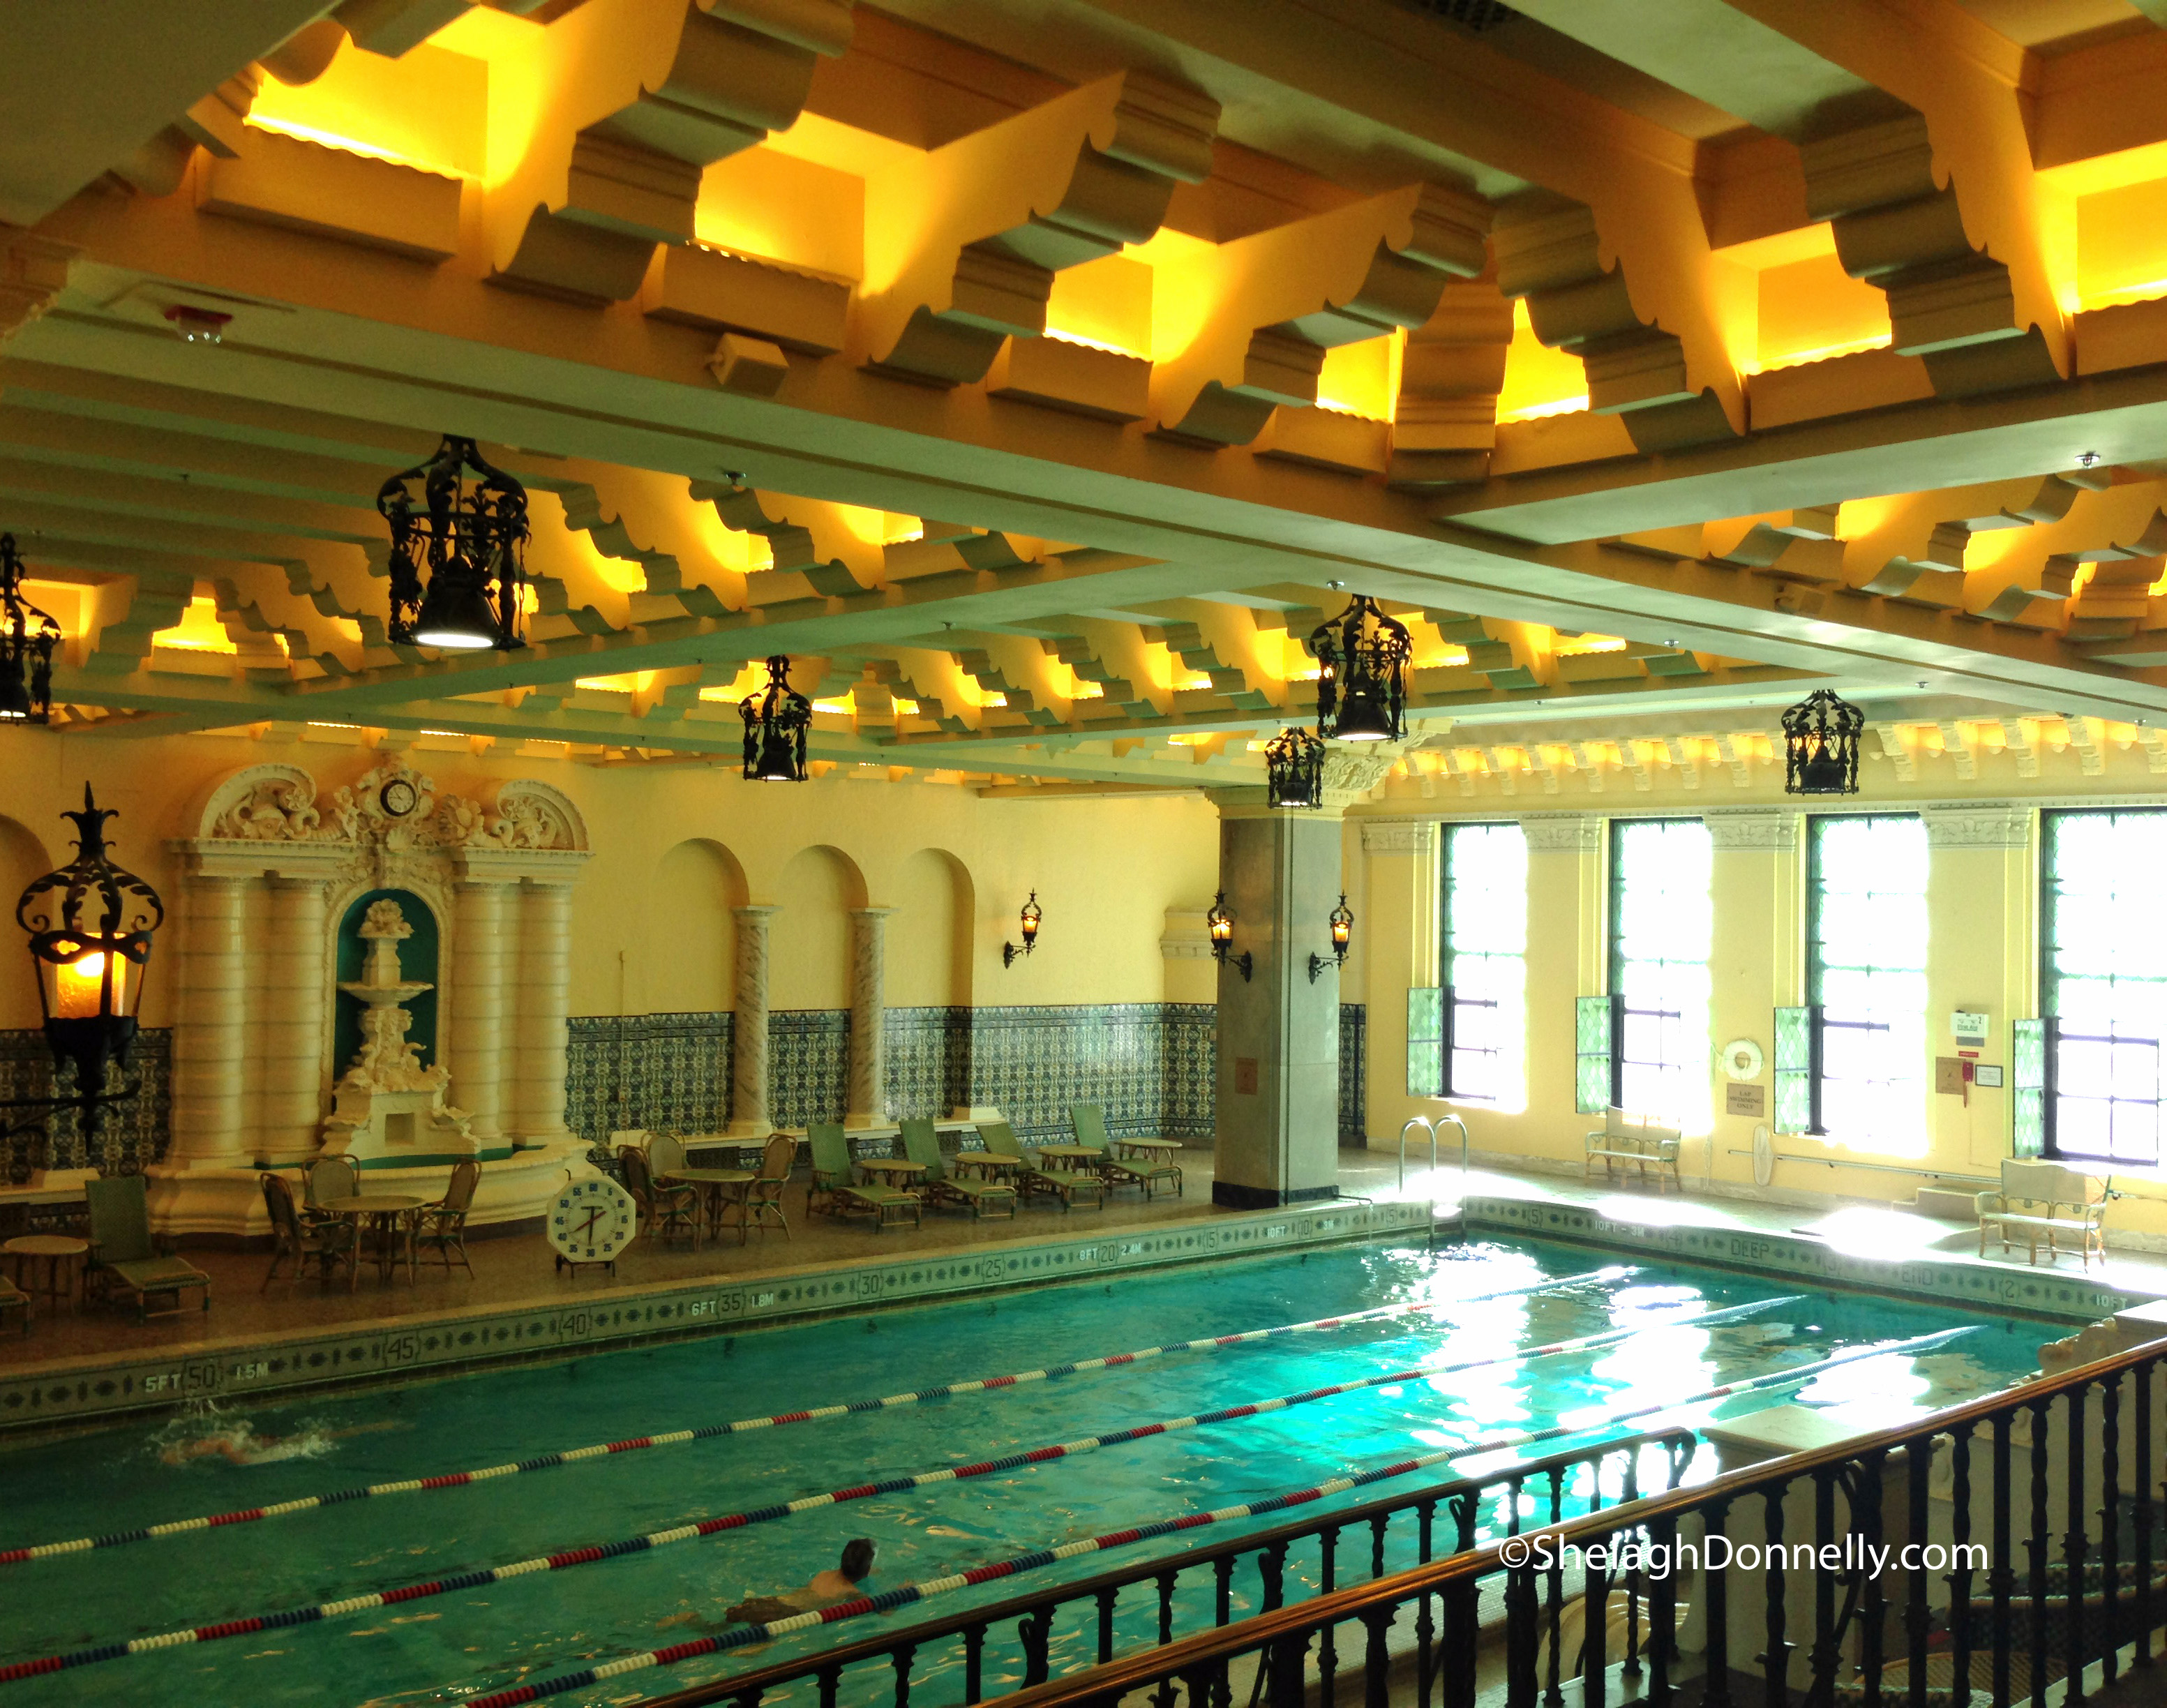 InterContinental Pool 1209 Copyright Shelagh Donnelly